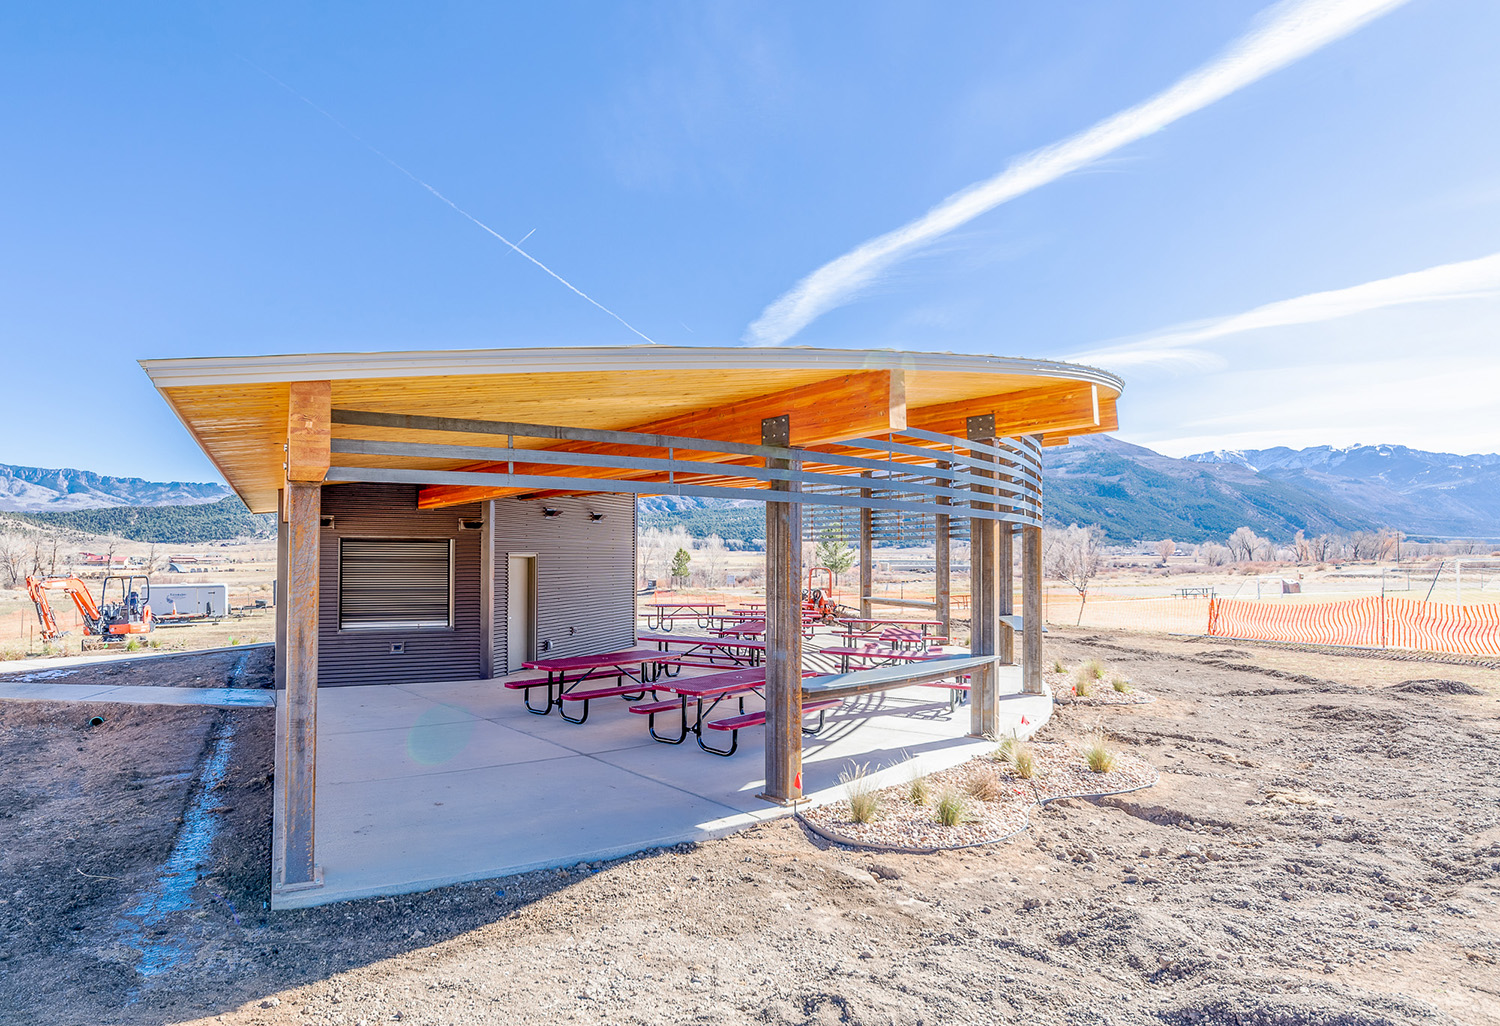 Athletic Pavilion in Ridgway, CO